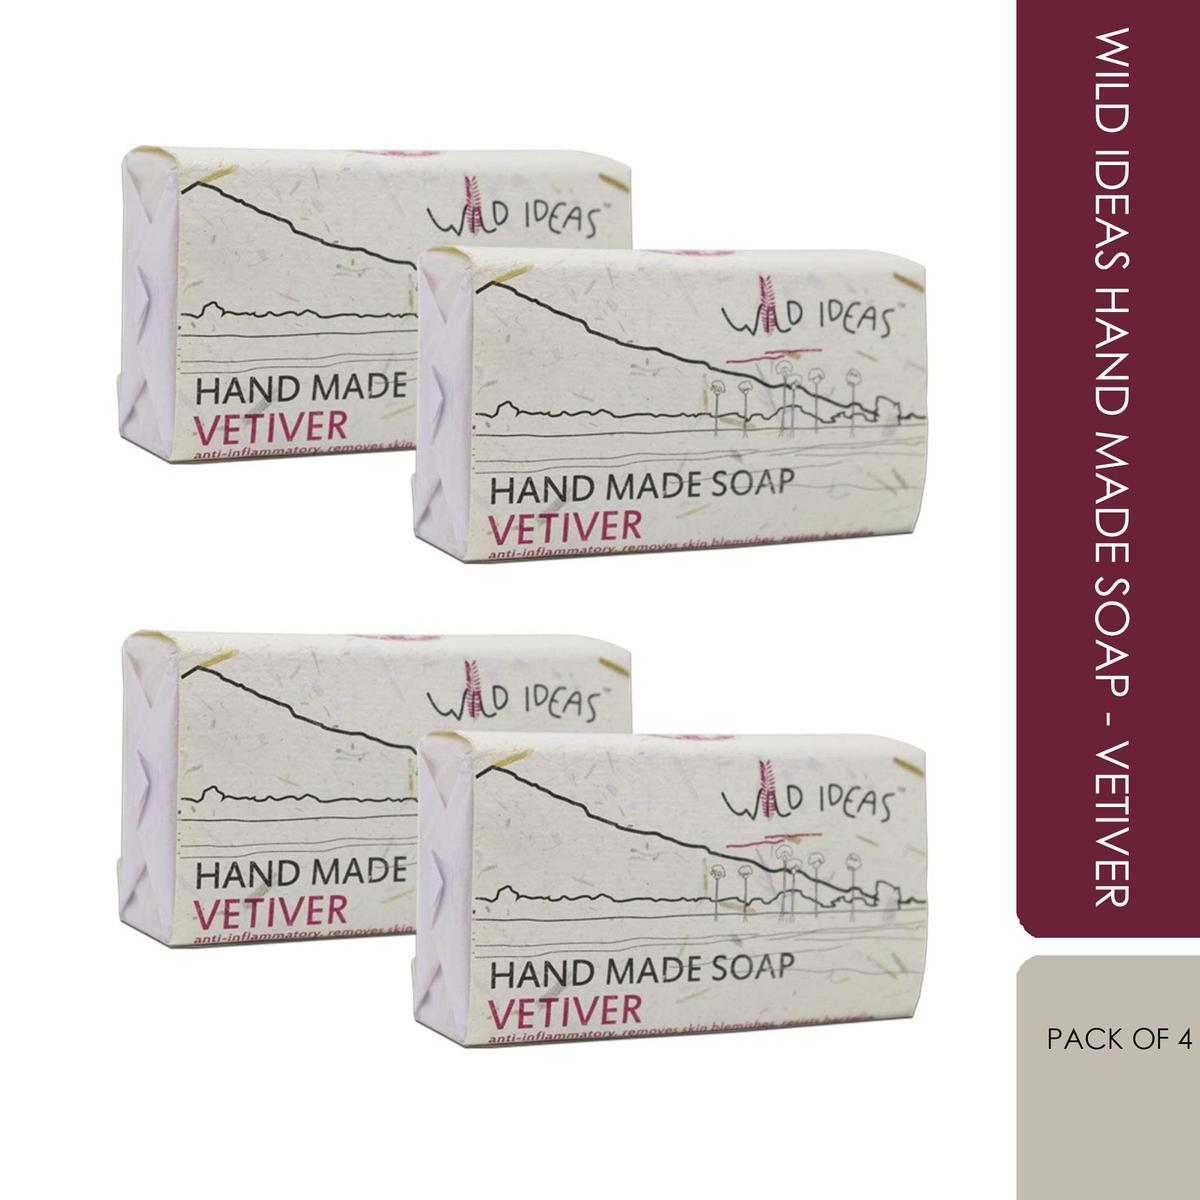 Wild Ideas Hand Made Soap - Vetiver (Pack Of 4)